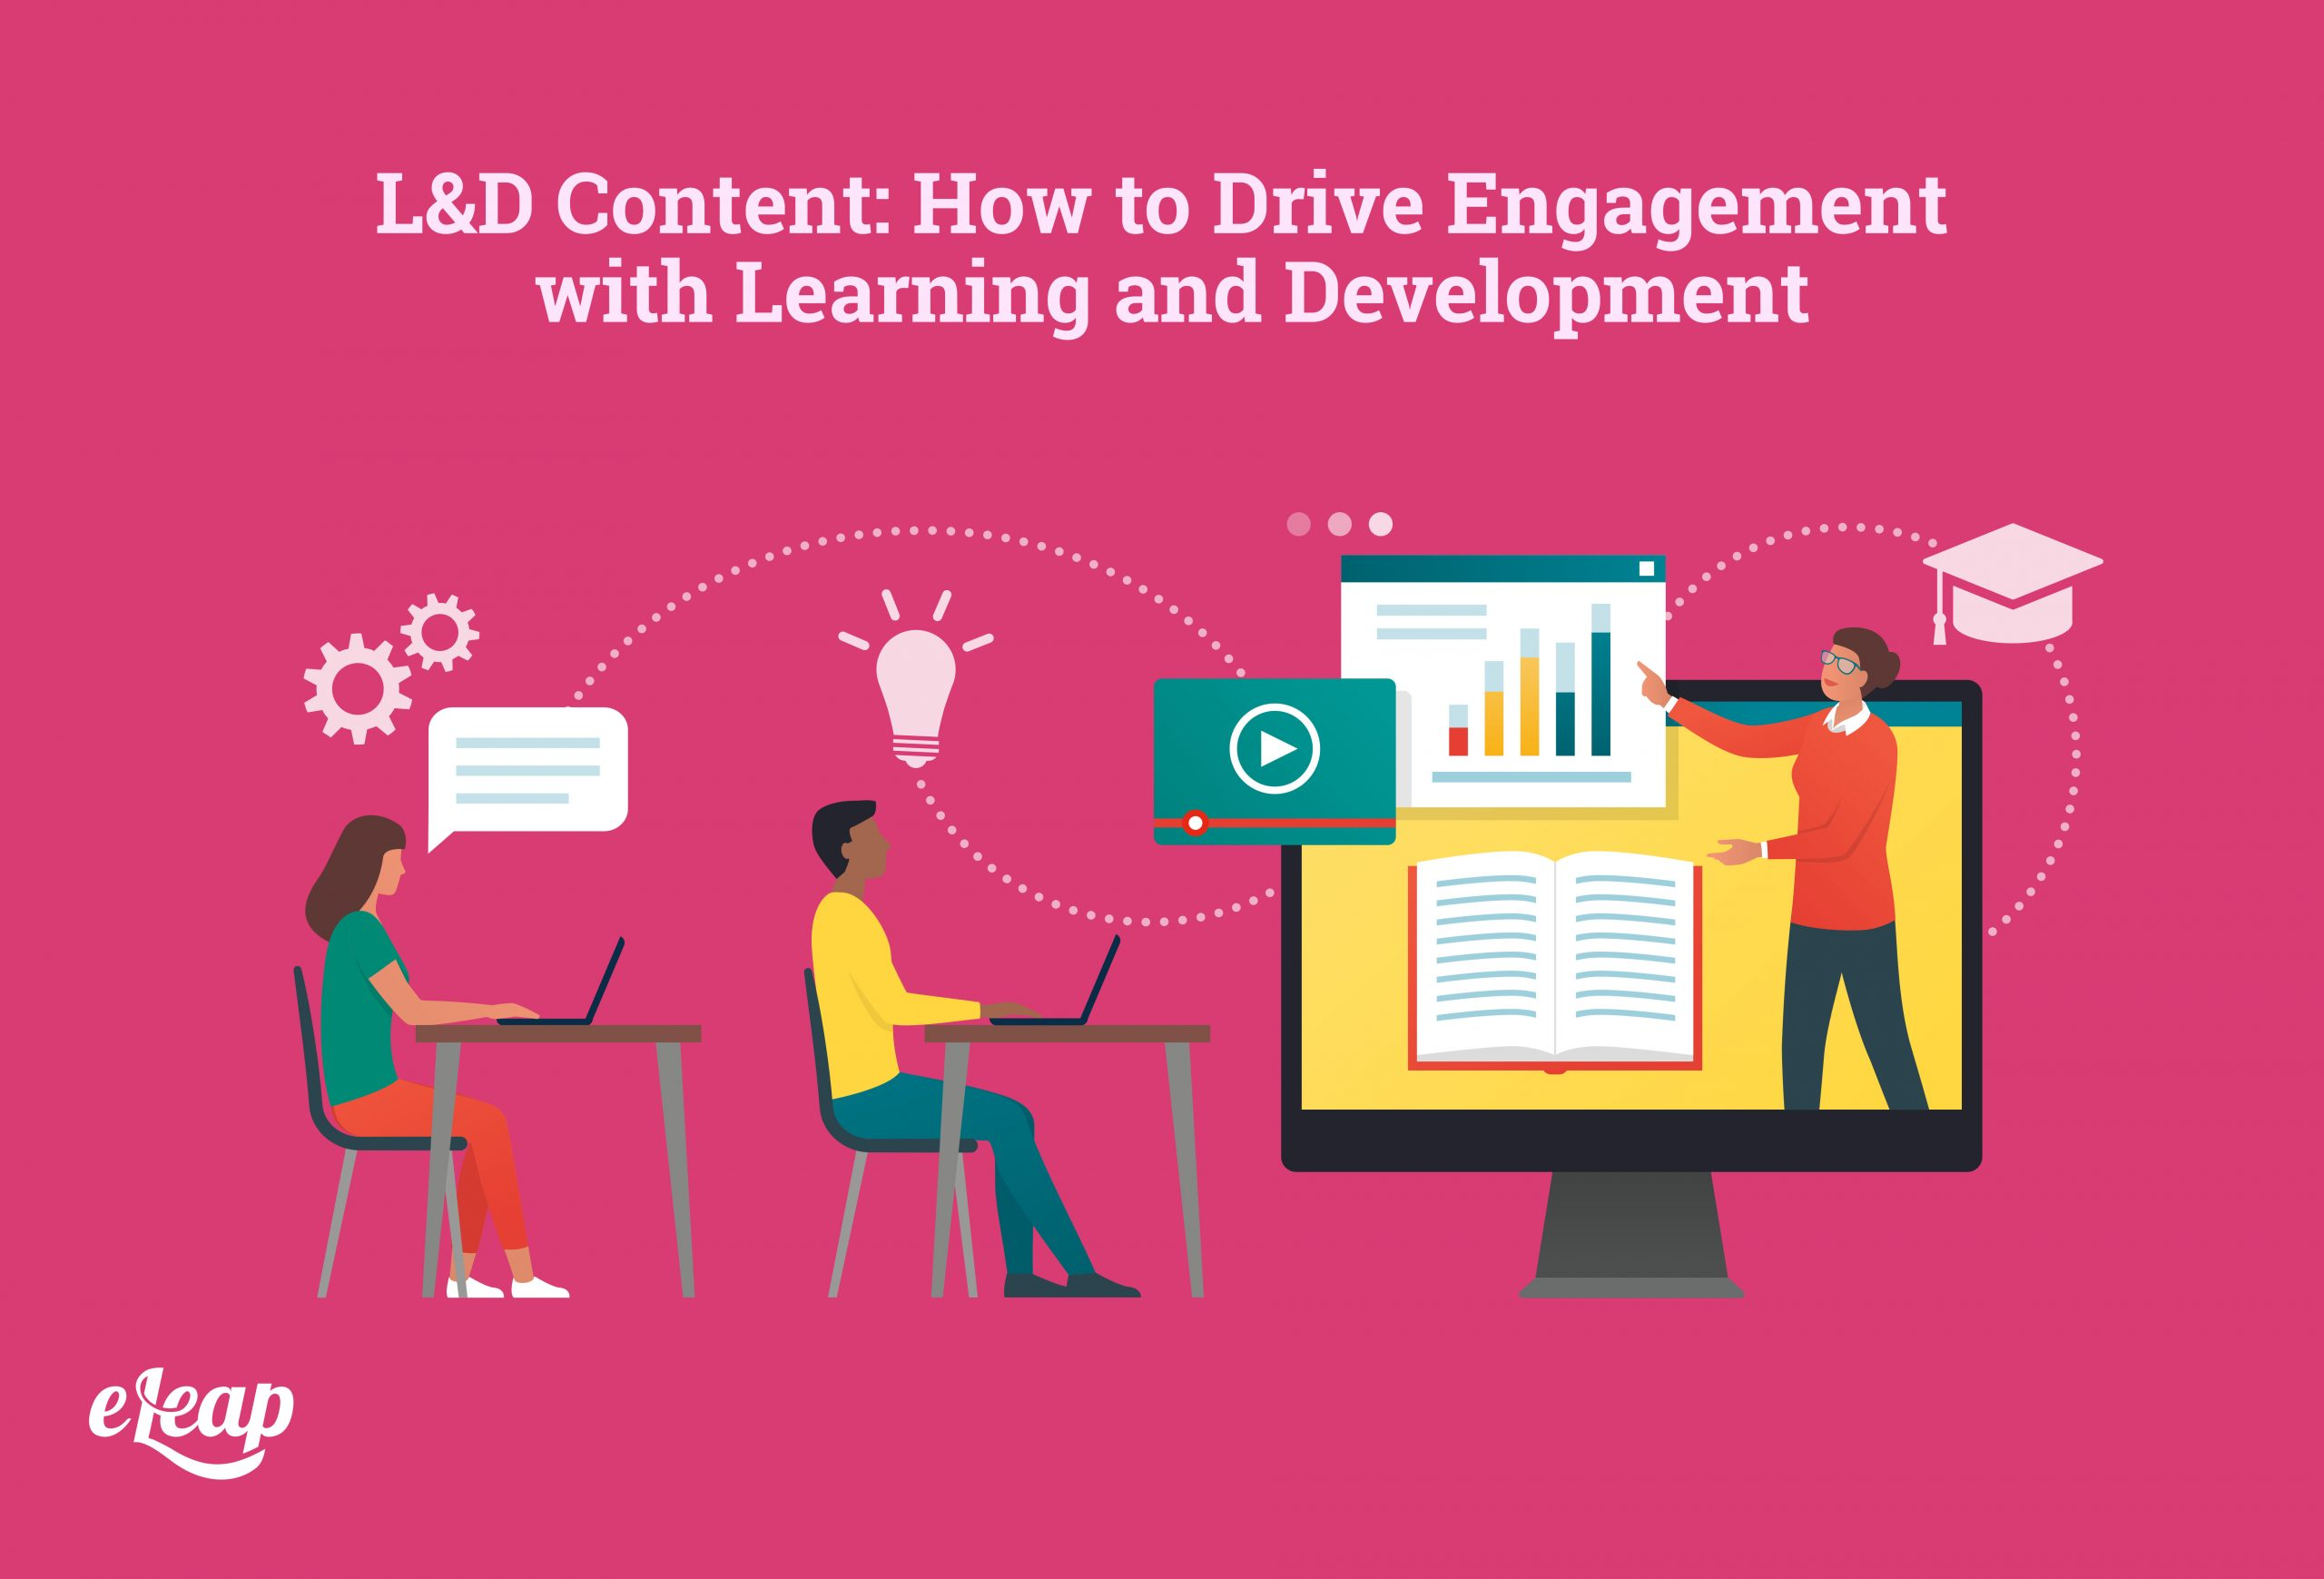 L&D Content: How to Drive Engagement with Learning and Development